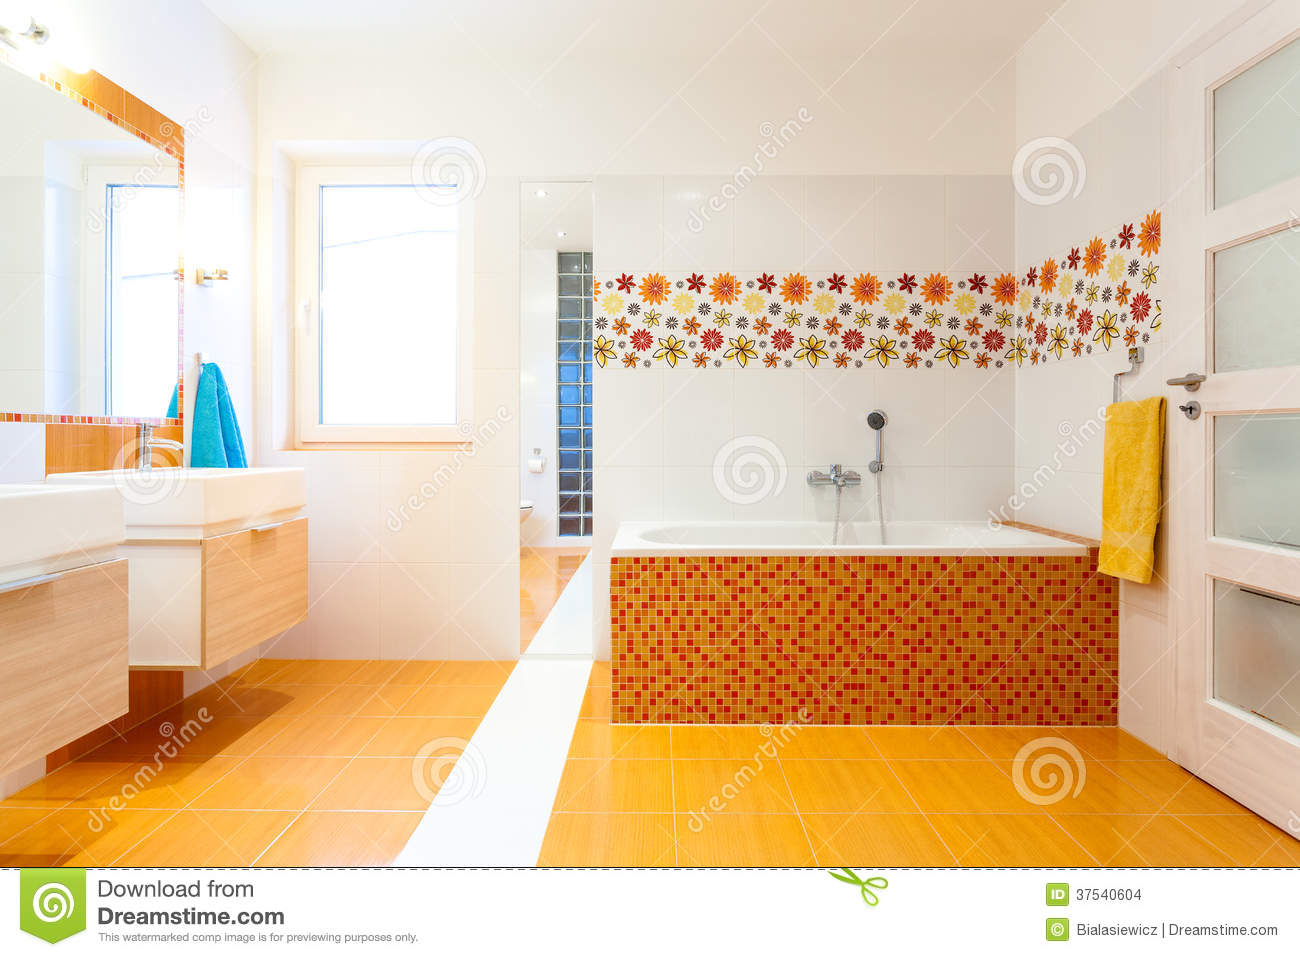 Badezimmer fliesen mosaik bunt  Orange Fliesen Mosaik Stockfotos – 1,060 Orange Fliesen Mosaik ...